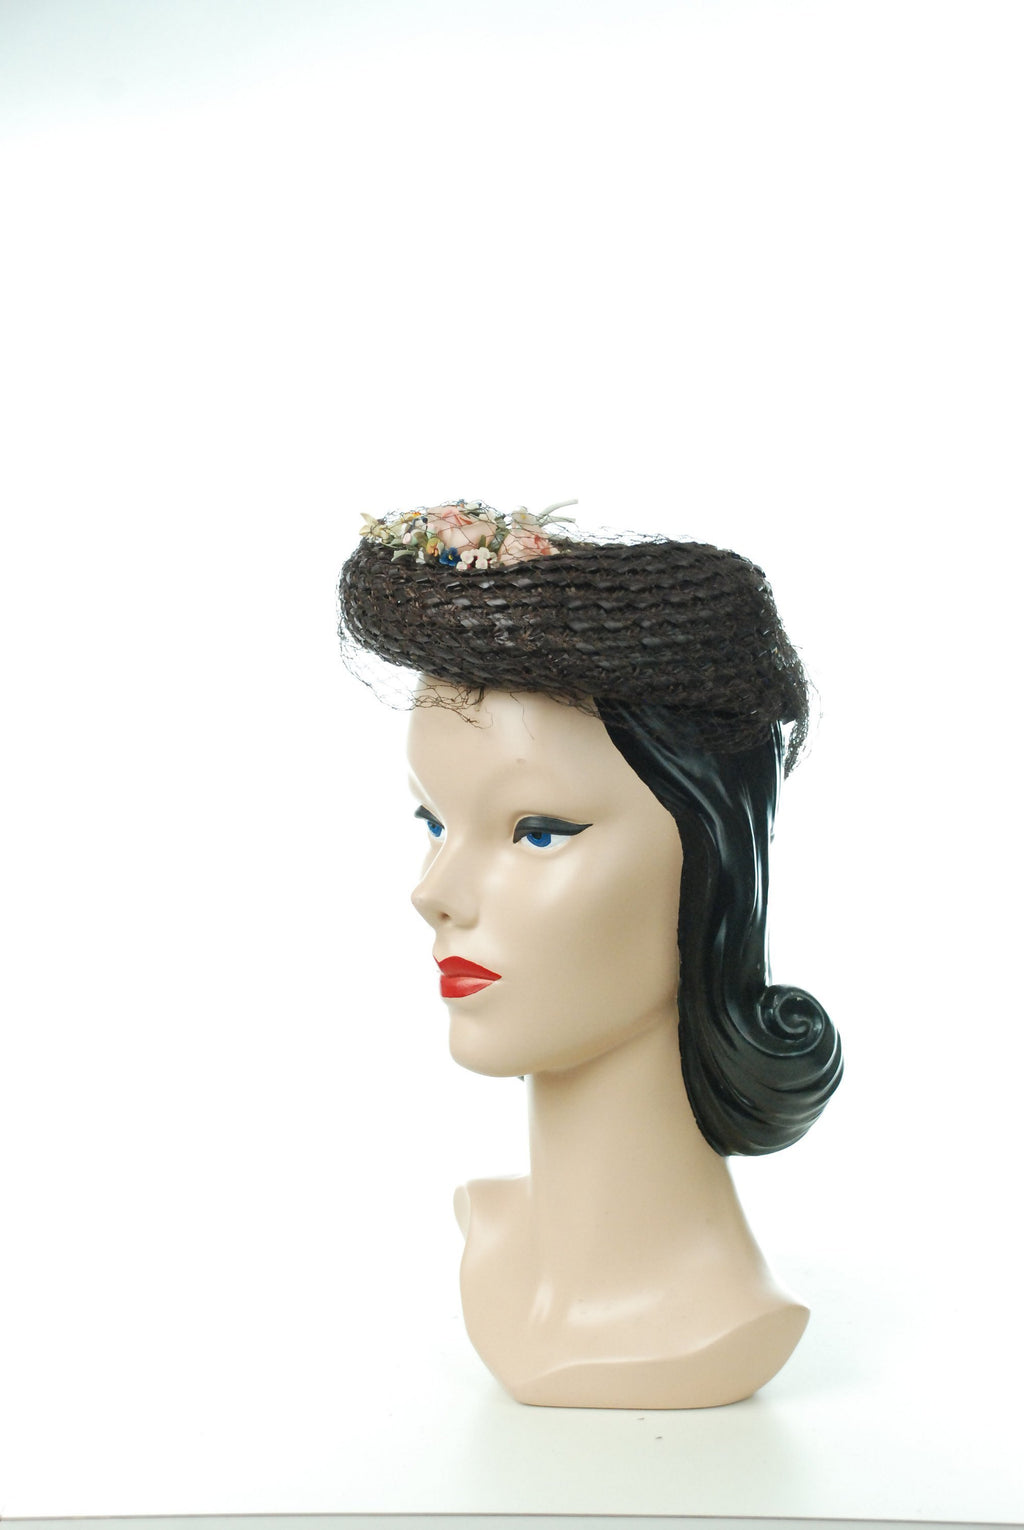 Vintage 1940s Hat - Deep Brown Woven Straw 40s Tilt Hat with Sculpted Brim and Millinery Bouquet